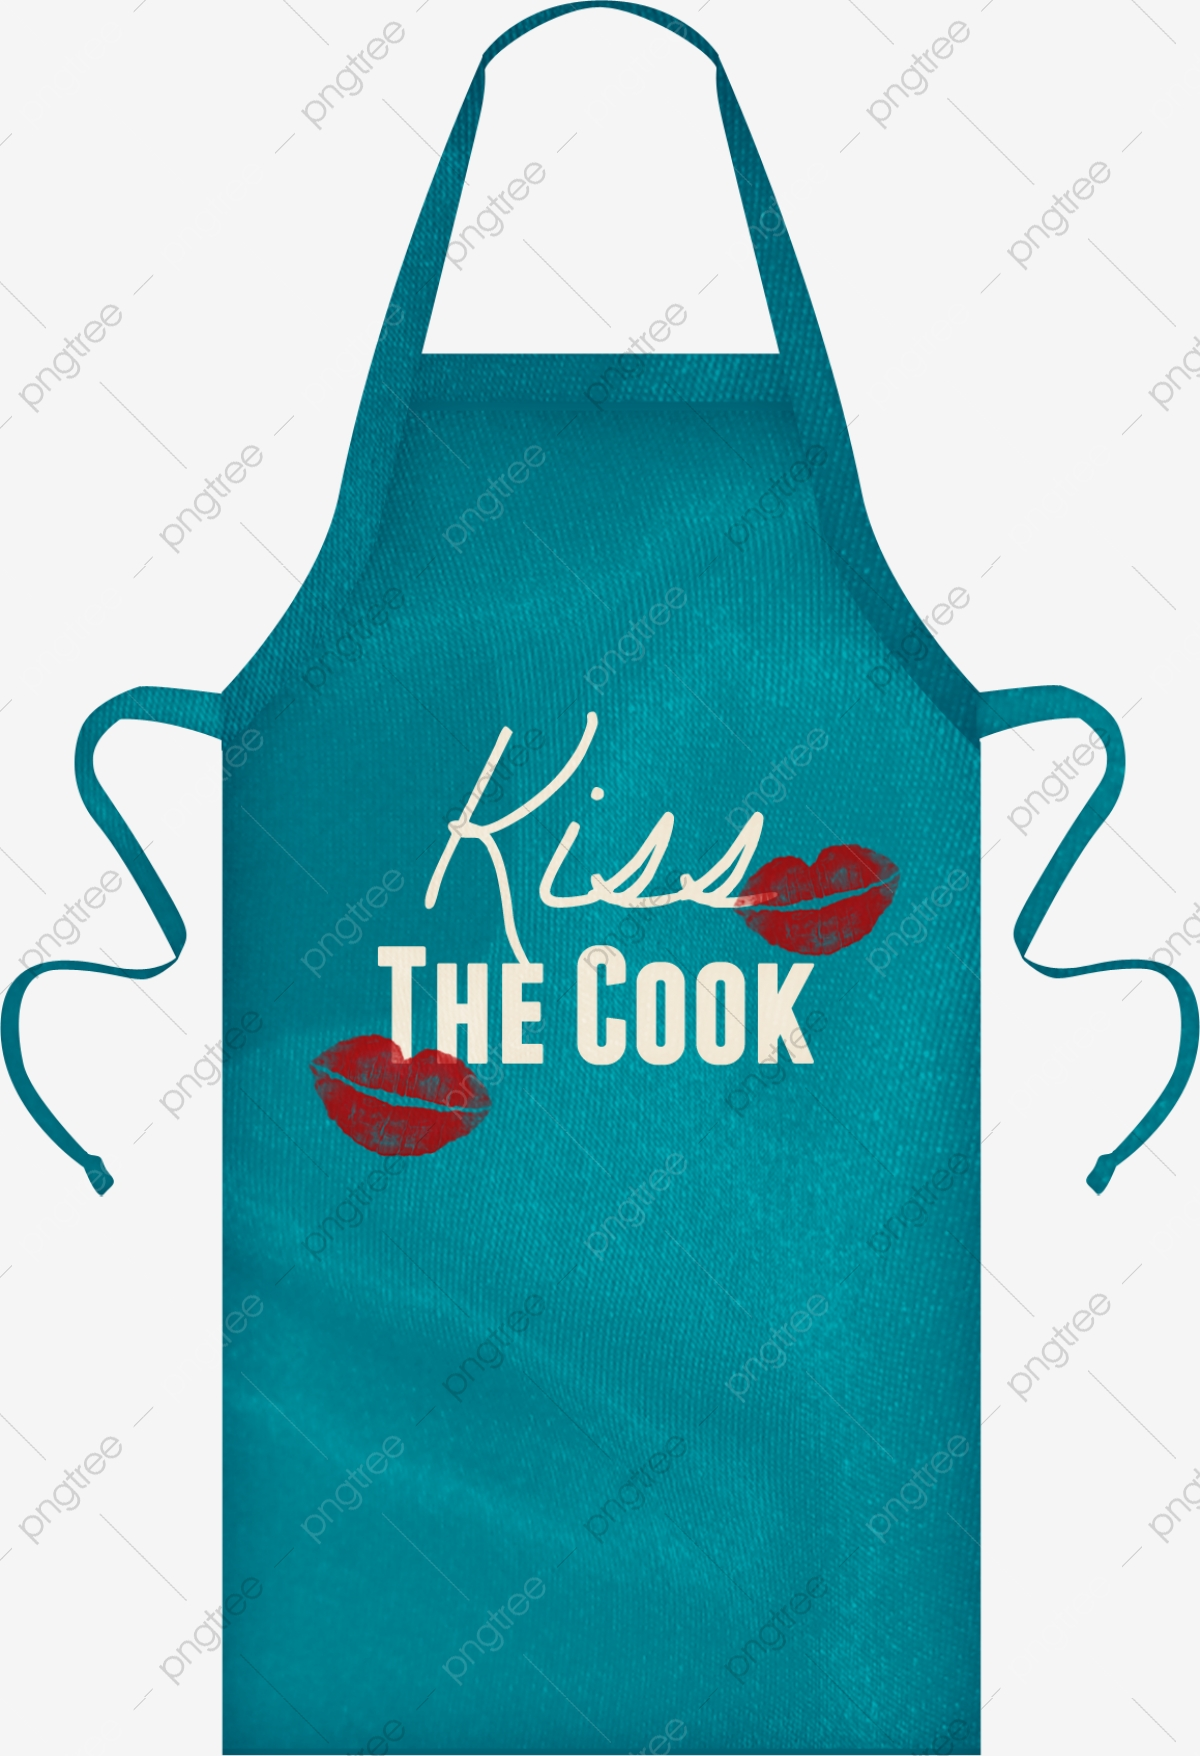 Aprons Png Free Download, Apron, Cartoon, Kitchenware PNG.